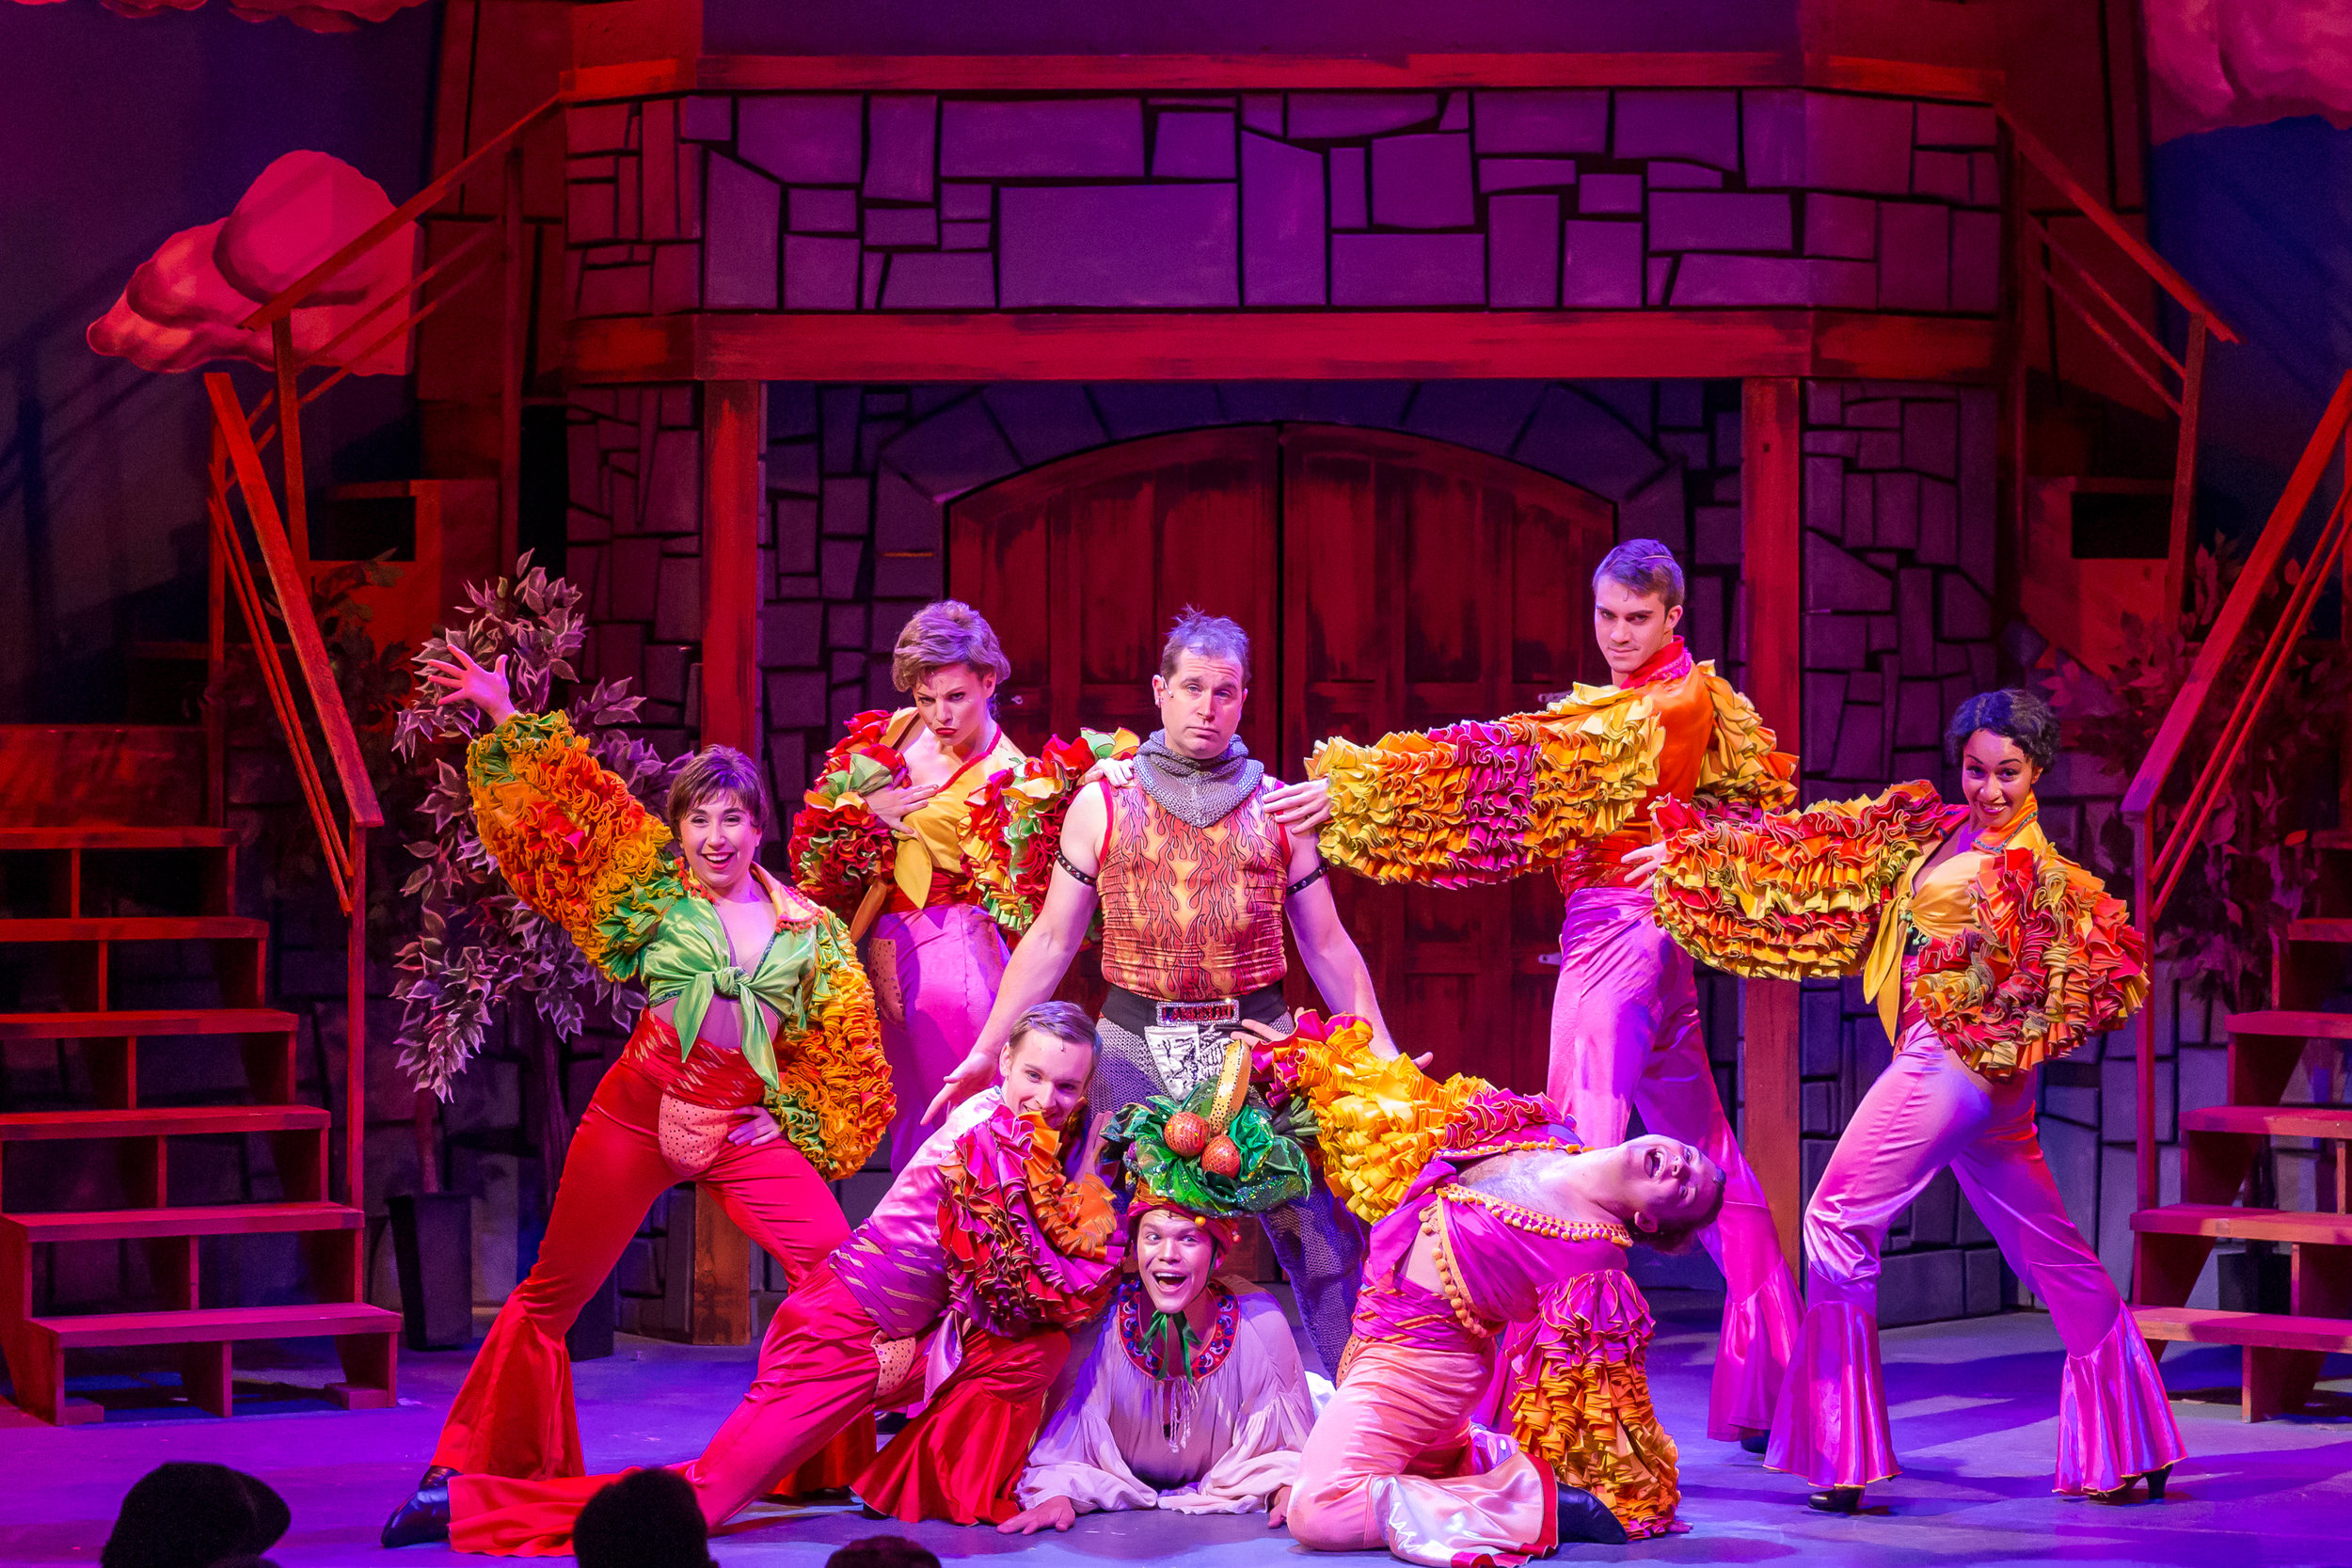 SpamalotActlIWide_Selects_HiRes_2O9A6827.jpg